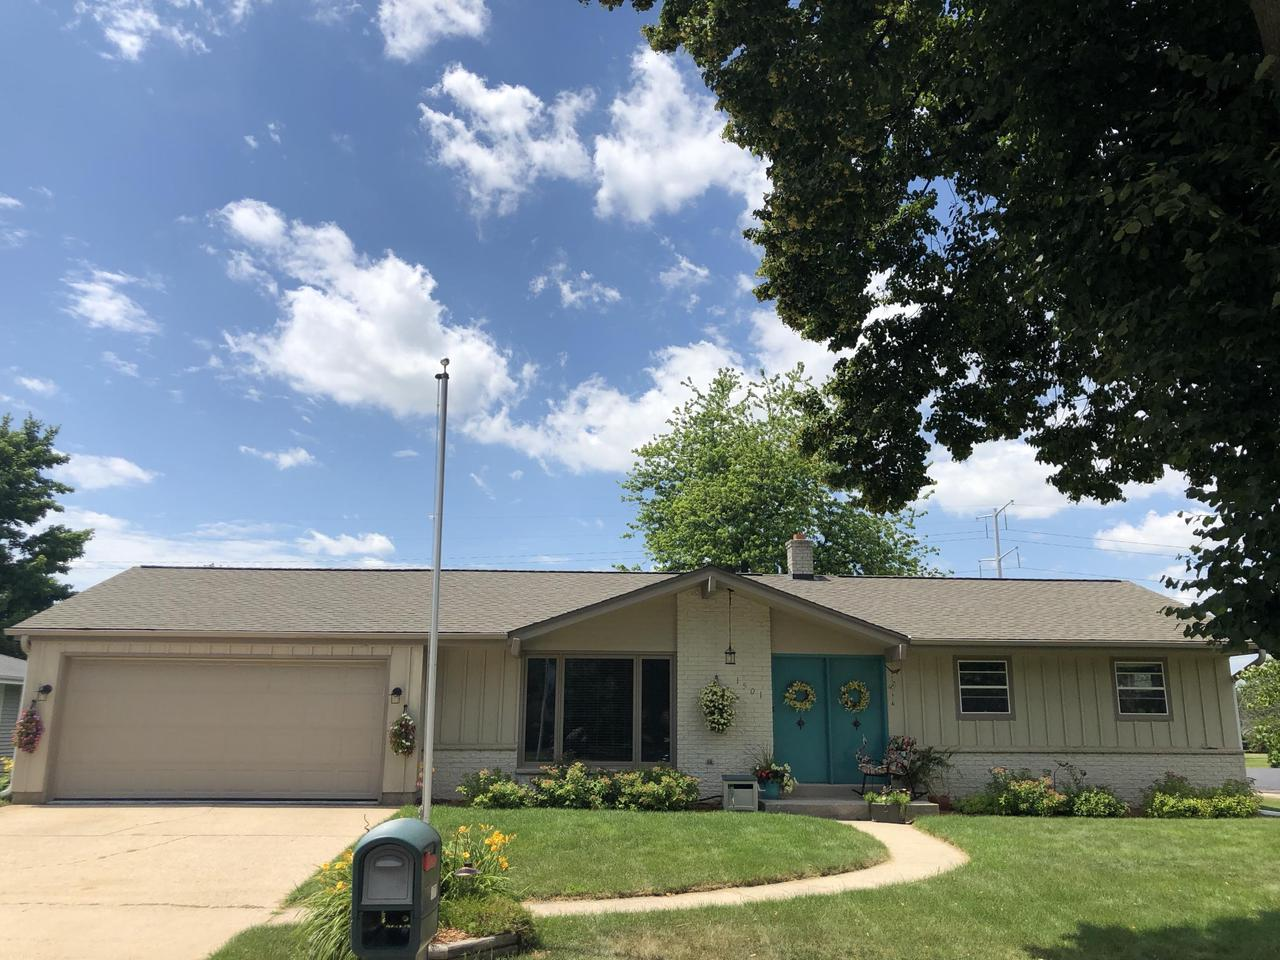 First time offered, original owner!  Lovingly maintained Grafton Ranch located in a quiet neighborhood close to Wildwood Park. Great location with easy access to all Grafton has to offer.  New roof (2017) Furnace (2014) Kitchen cosmetically refreshed approximately 10 years ago. HWFs in all bedrooms. Beautifully landscaped yard with large deck and shed.